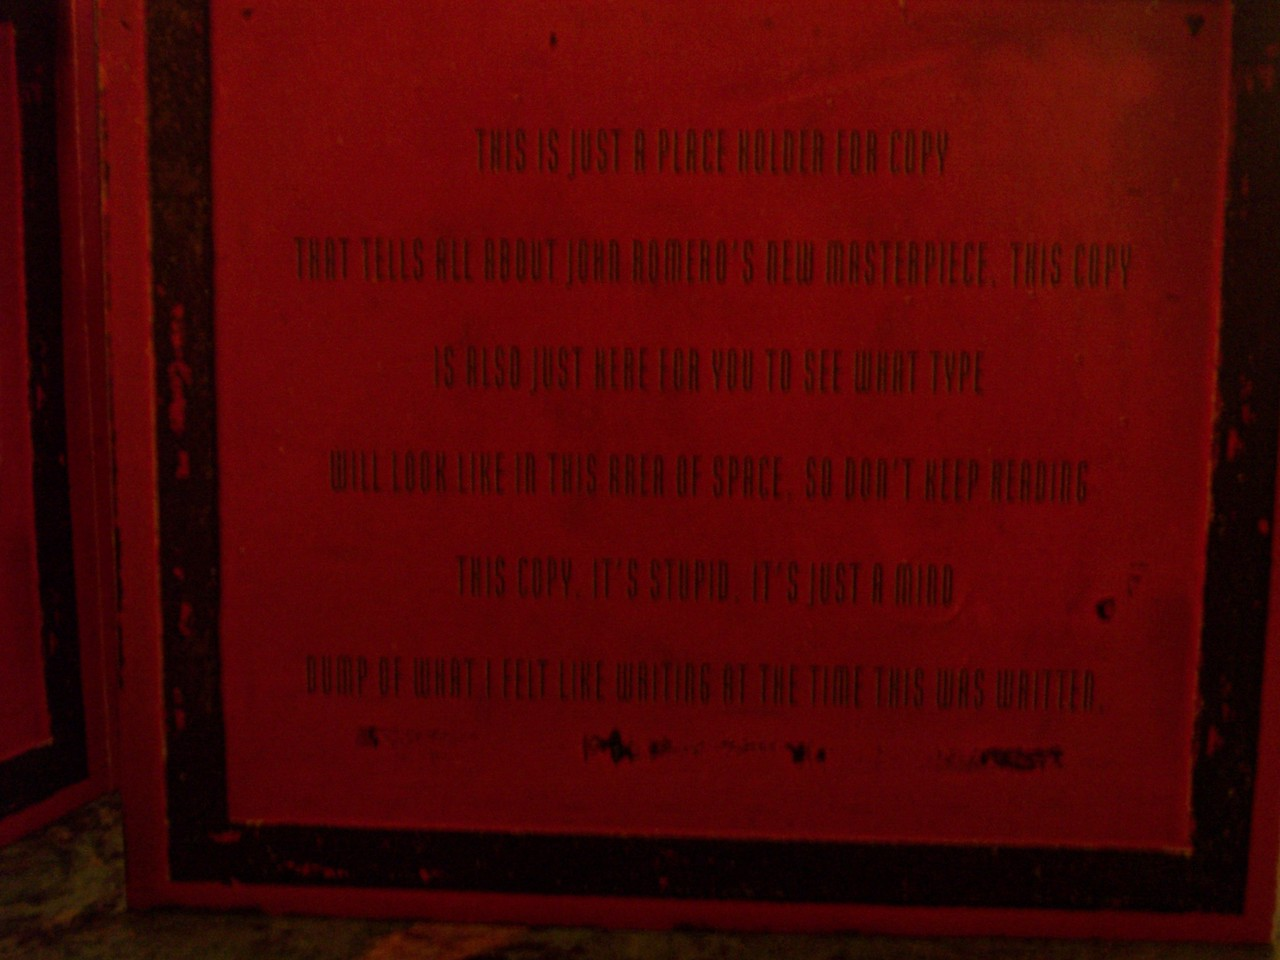 """The inside cover of the digipak in production.  It reads,""""This is just a place holder for copy that tells all about John Romero's new masterpiece. This copy is also just here for you to see what type will look like in this area of space.  So don't keep reading this copy.  It's stupid.  It's just a mind dump of what I felt like writing at the time this was written.""""  LOLZ!  Go Sasha! (Sasha Shor, creator of all Ion Storm's packaging and corporate identity, etc.)"""